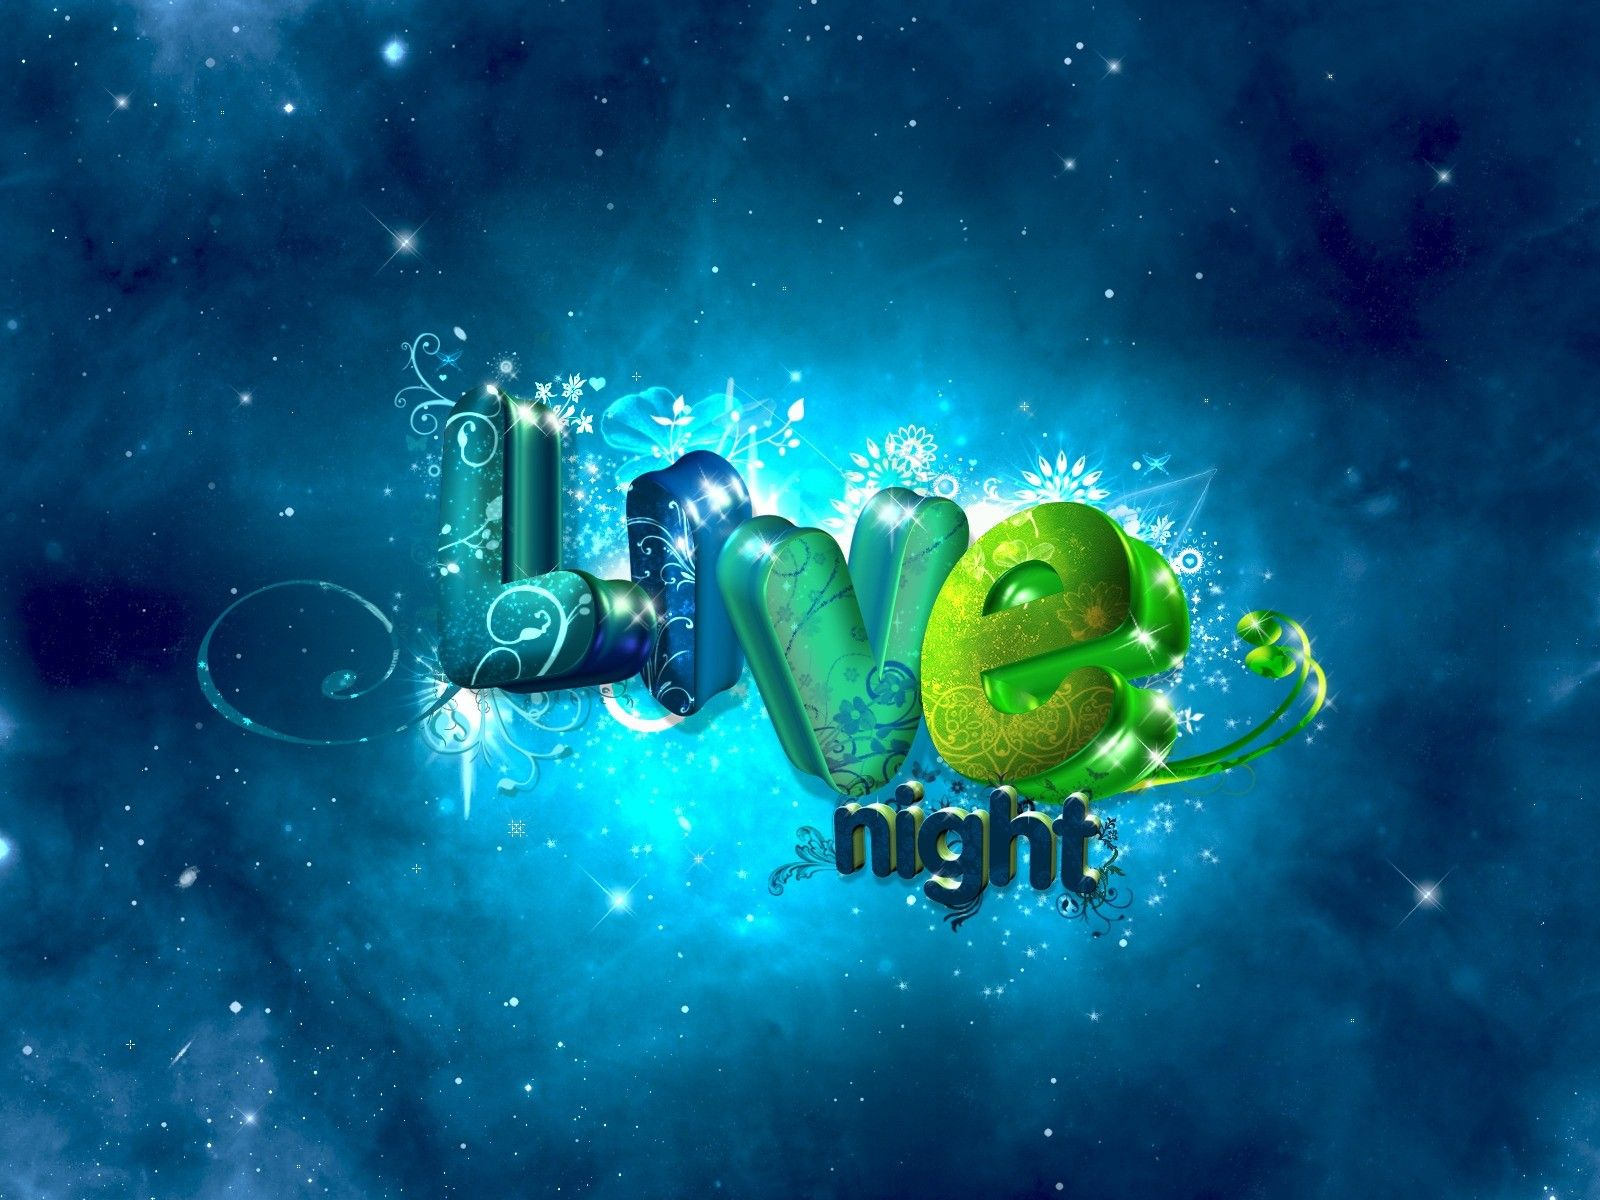 Live Wallpaper Of Love For Pc : Live Wallpapers and Screensavers for Windows HD Wallpapers Pinterest Live wallpapers ...